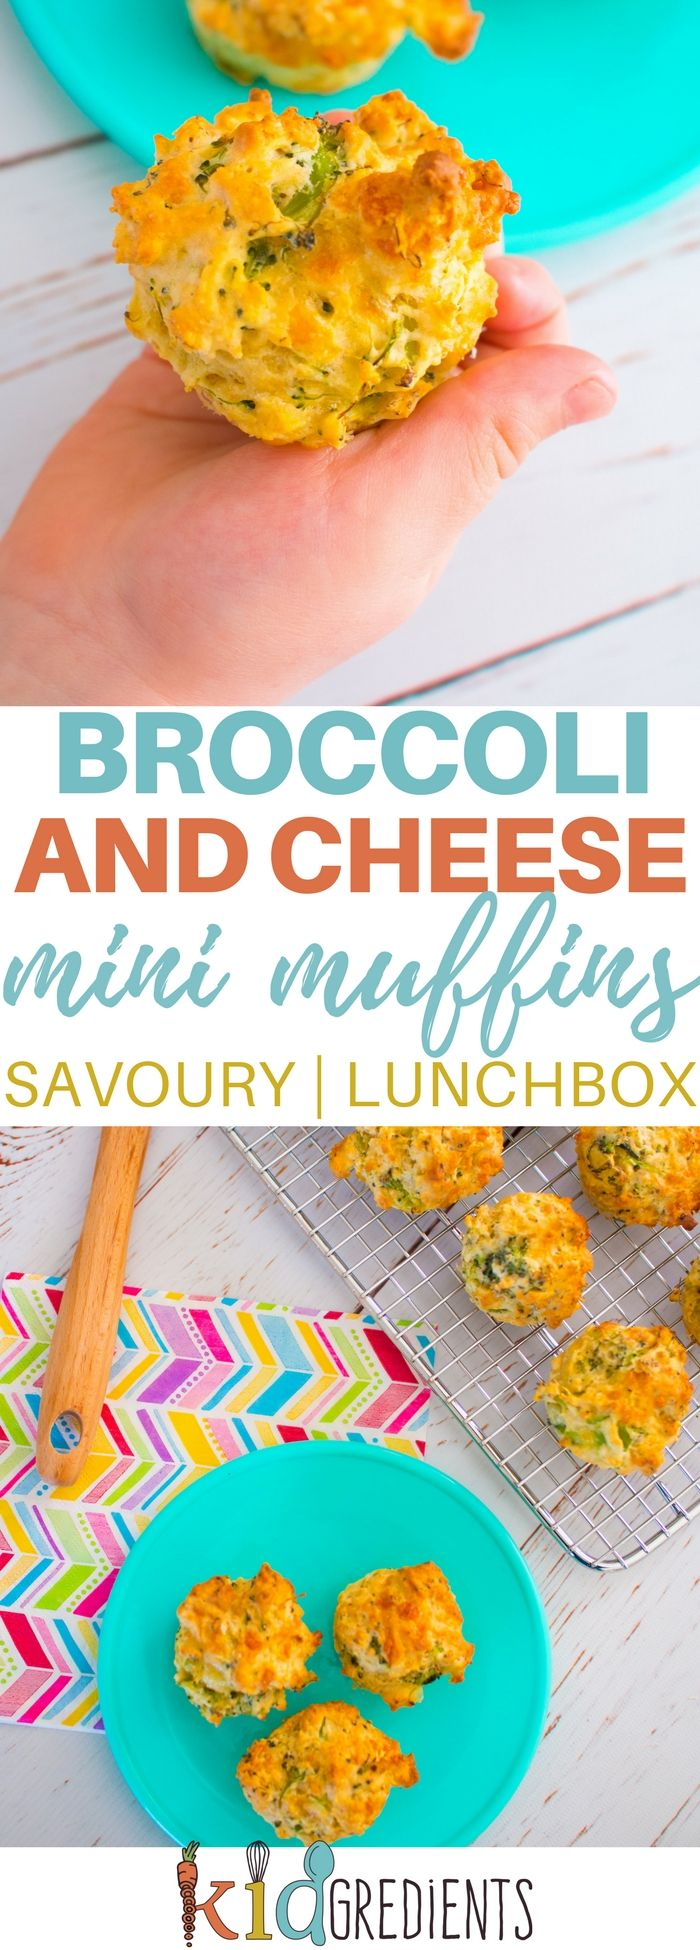 broccoli and cheese mini muffins, a savoury muffin perfect for the lunchbox.  Easy to make and super kidfriendly freezer friendly too! #kidsfood #yummy #recipe #healthykids via @kidgredients